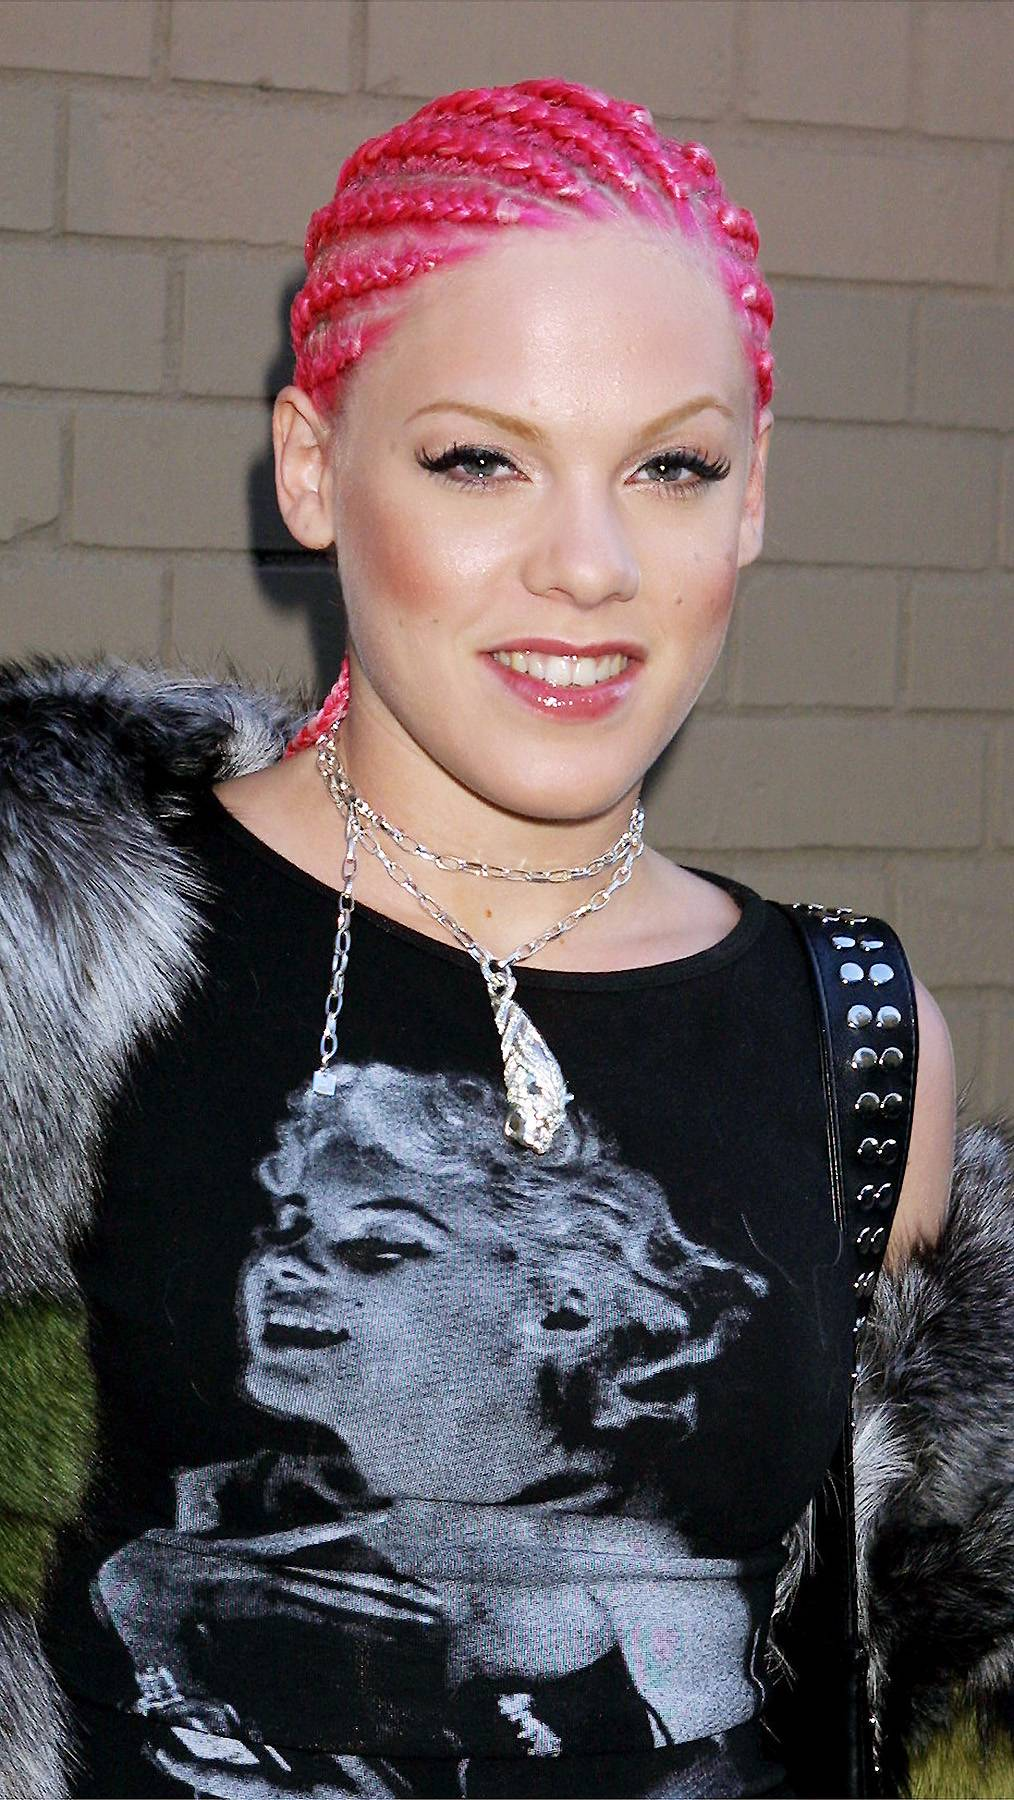 Pink on P!nk - P!nk's hair isn't pink anymore, but when she emerged as an artist, her hair was pink and at times braided in cornrows, like it is here. All we can say is that you live and you learn.(Photo: George De Sota/Newsmakers)